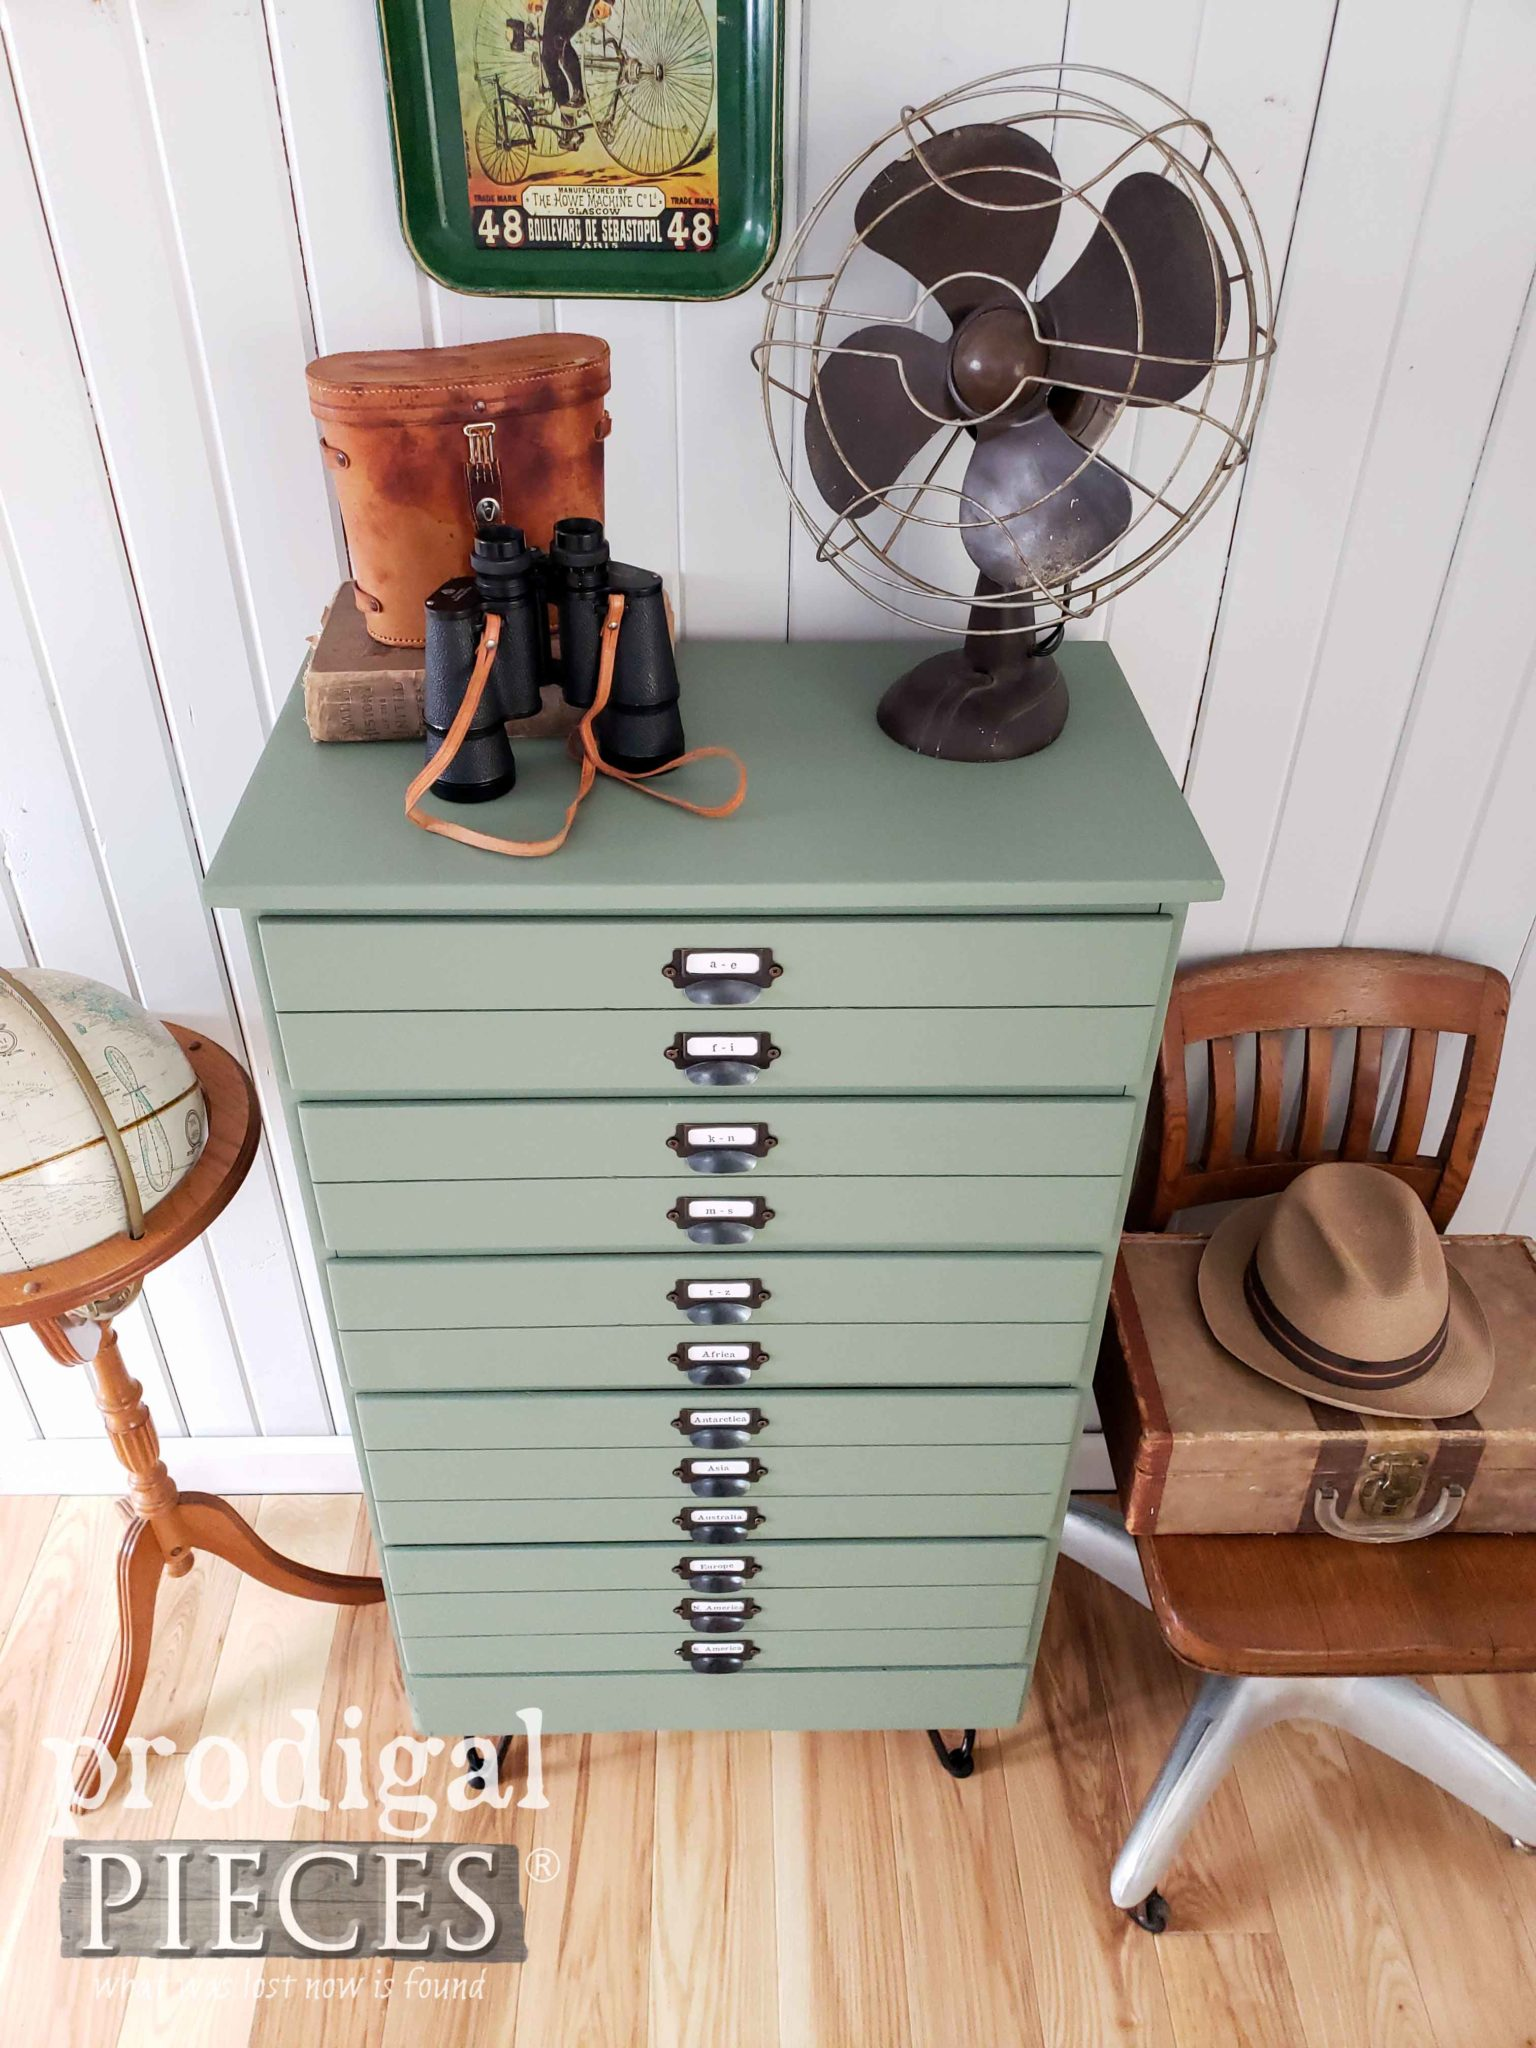 Vintage Style Green Map Cabinet by Larissa of Prodigal Pieces | prodigalpieces.com #prodigalpieces #diy #furniture #home #farmhouse #homedecor #homedecorideas #shopping